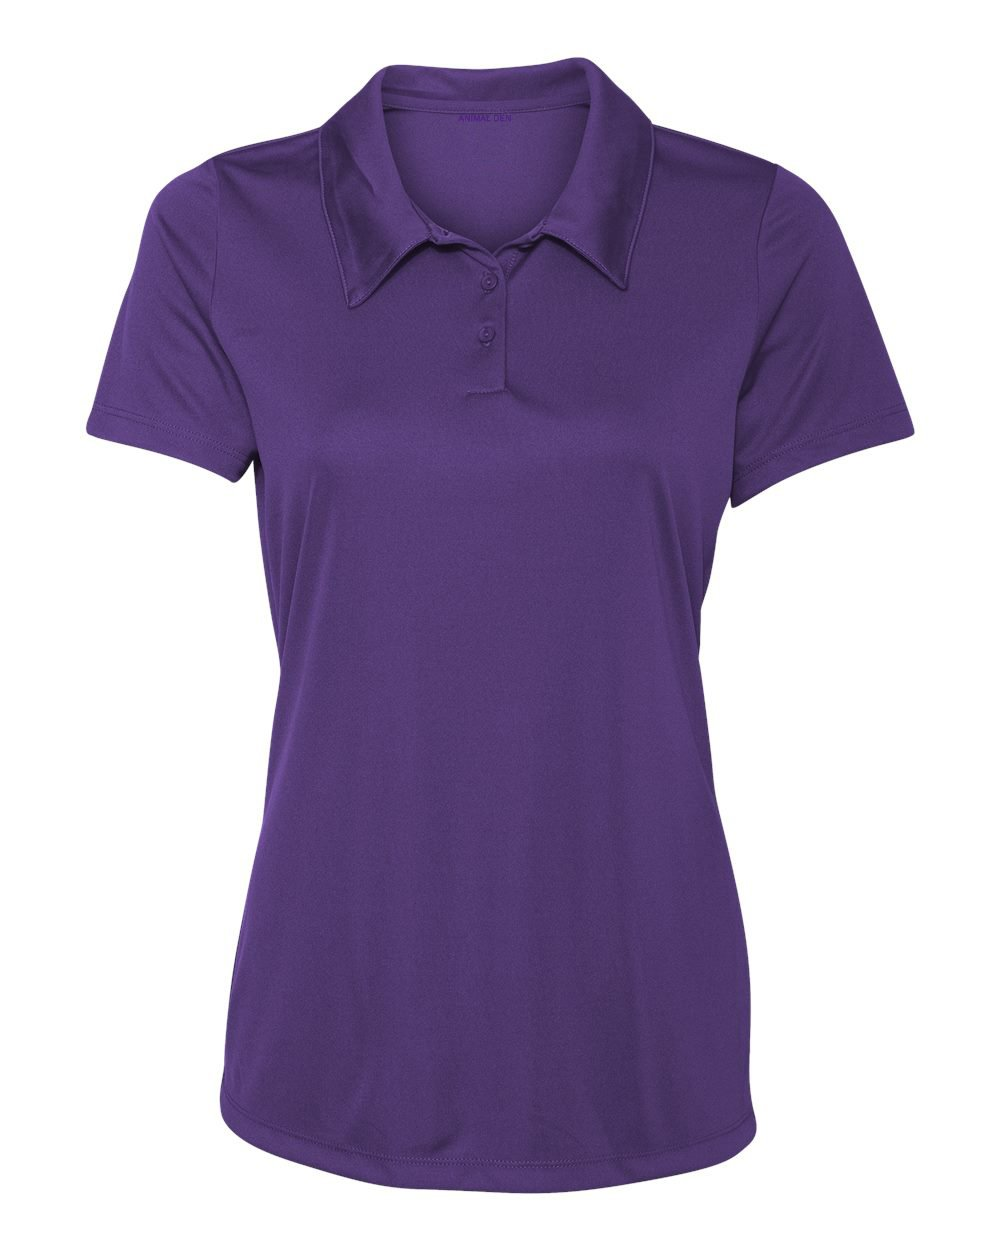 Women's Dry-Fit Golf Polo Shirts 3-Button Golf Polo's in 20 Colors XS-3XL Shirt PURPLE-XS